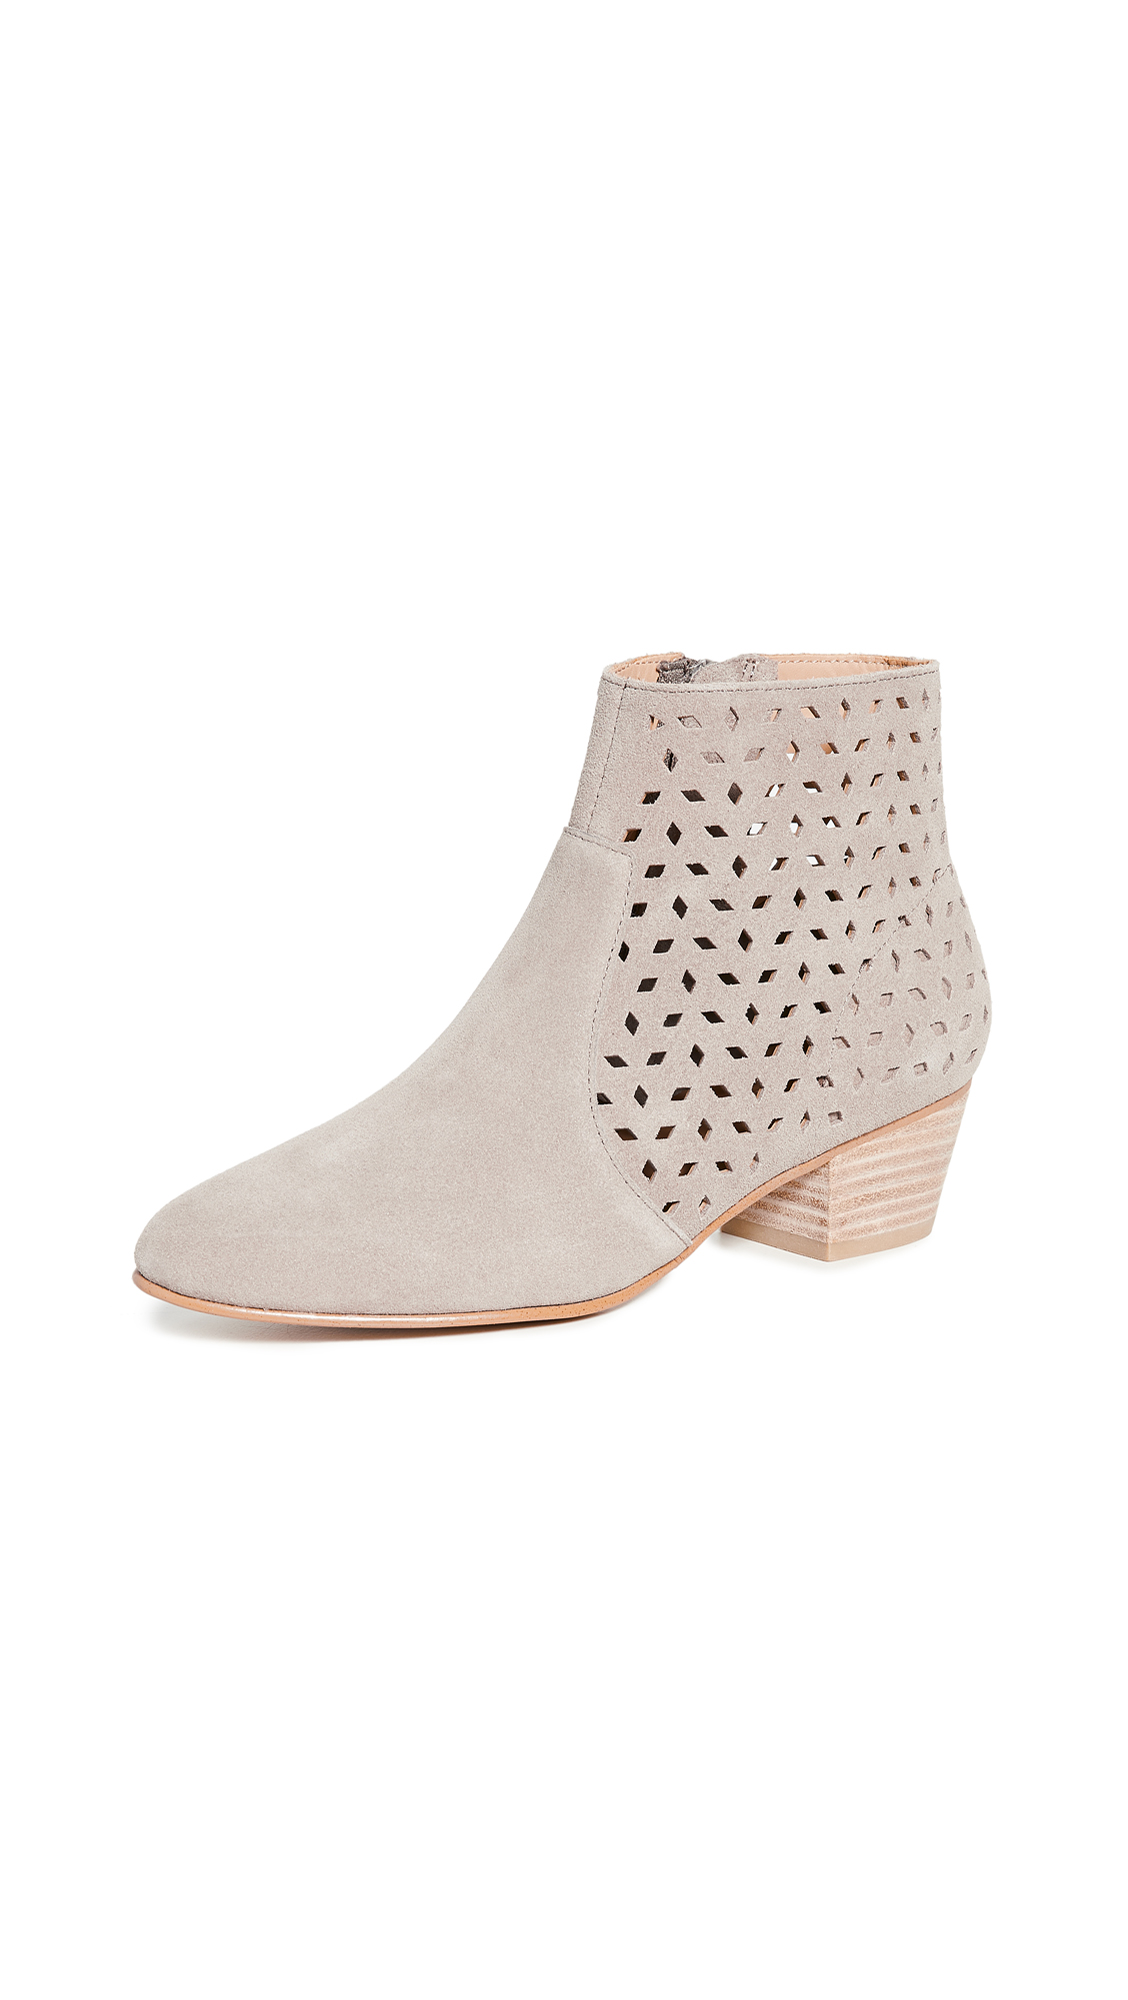 Soludos Lola Perforated Booties - 50% Off Sale